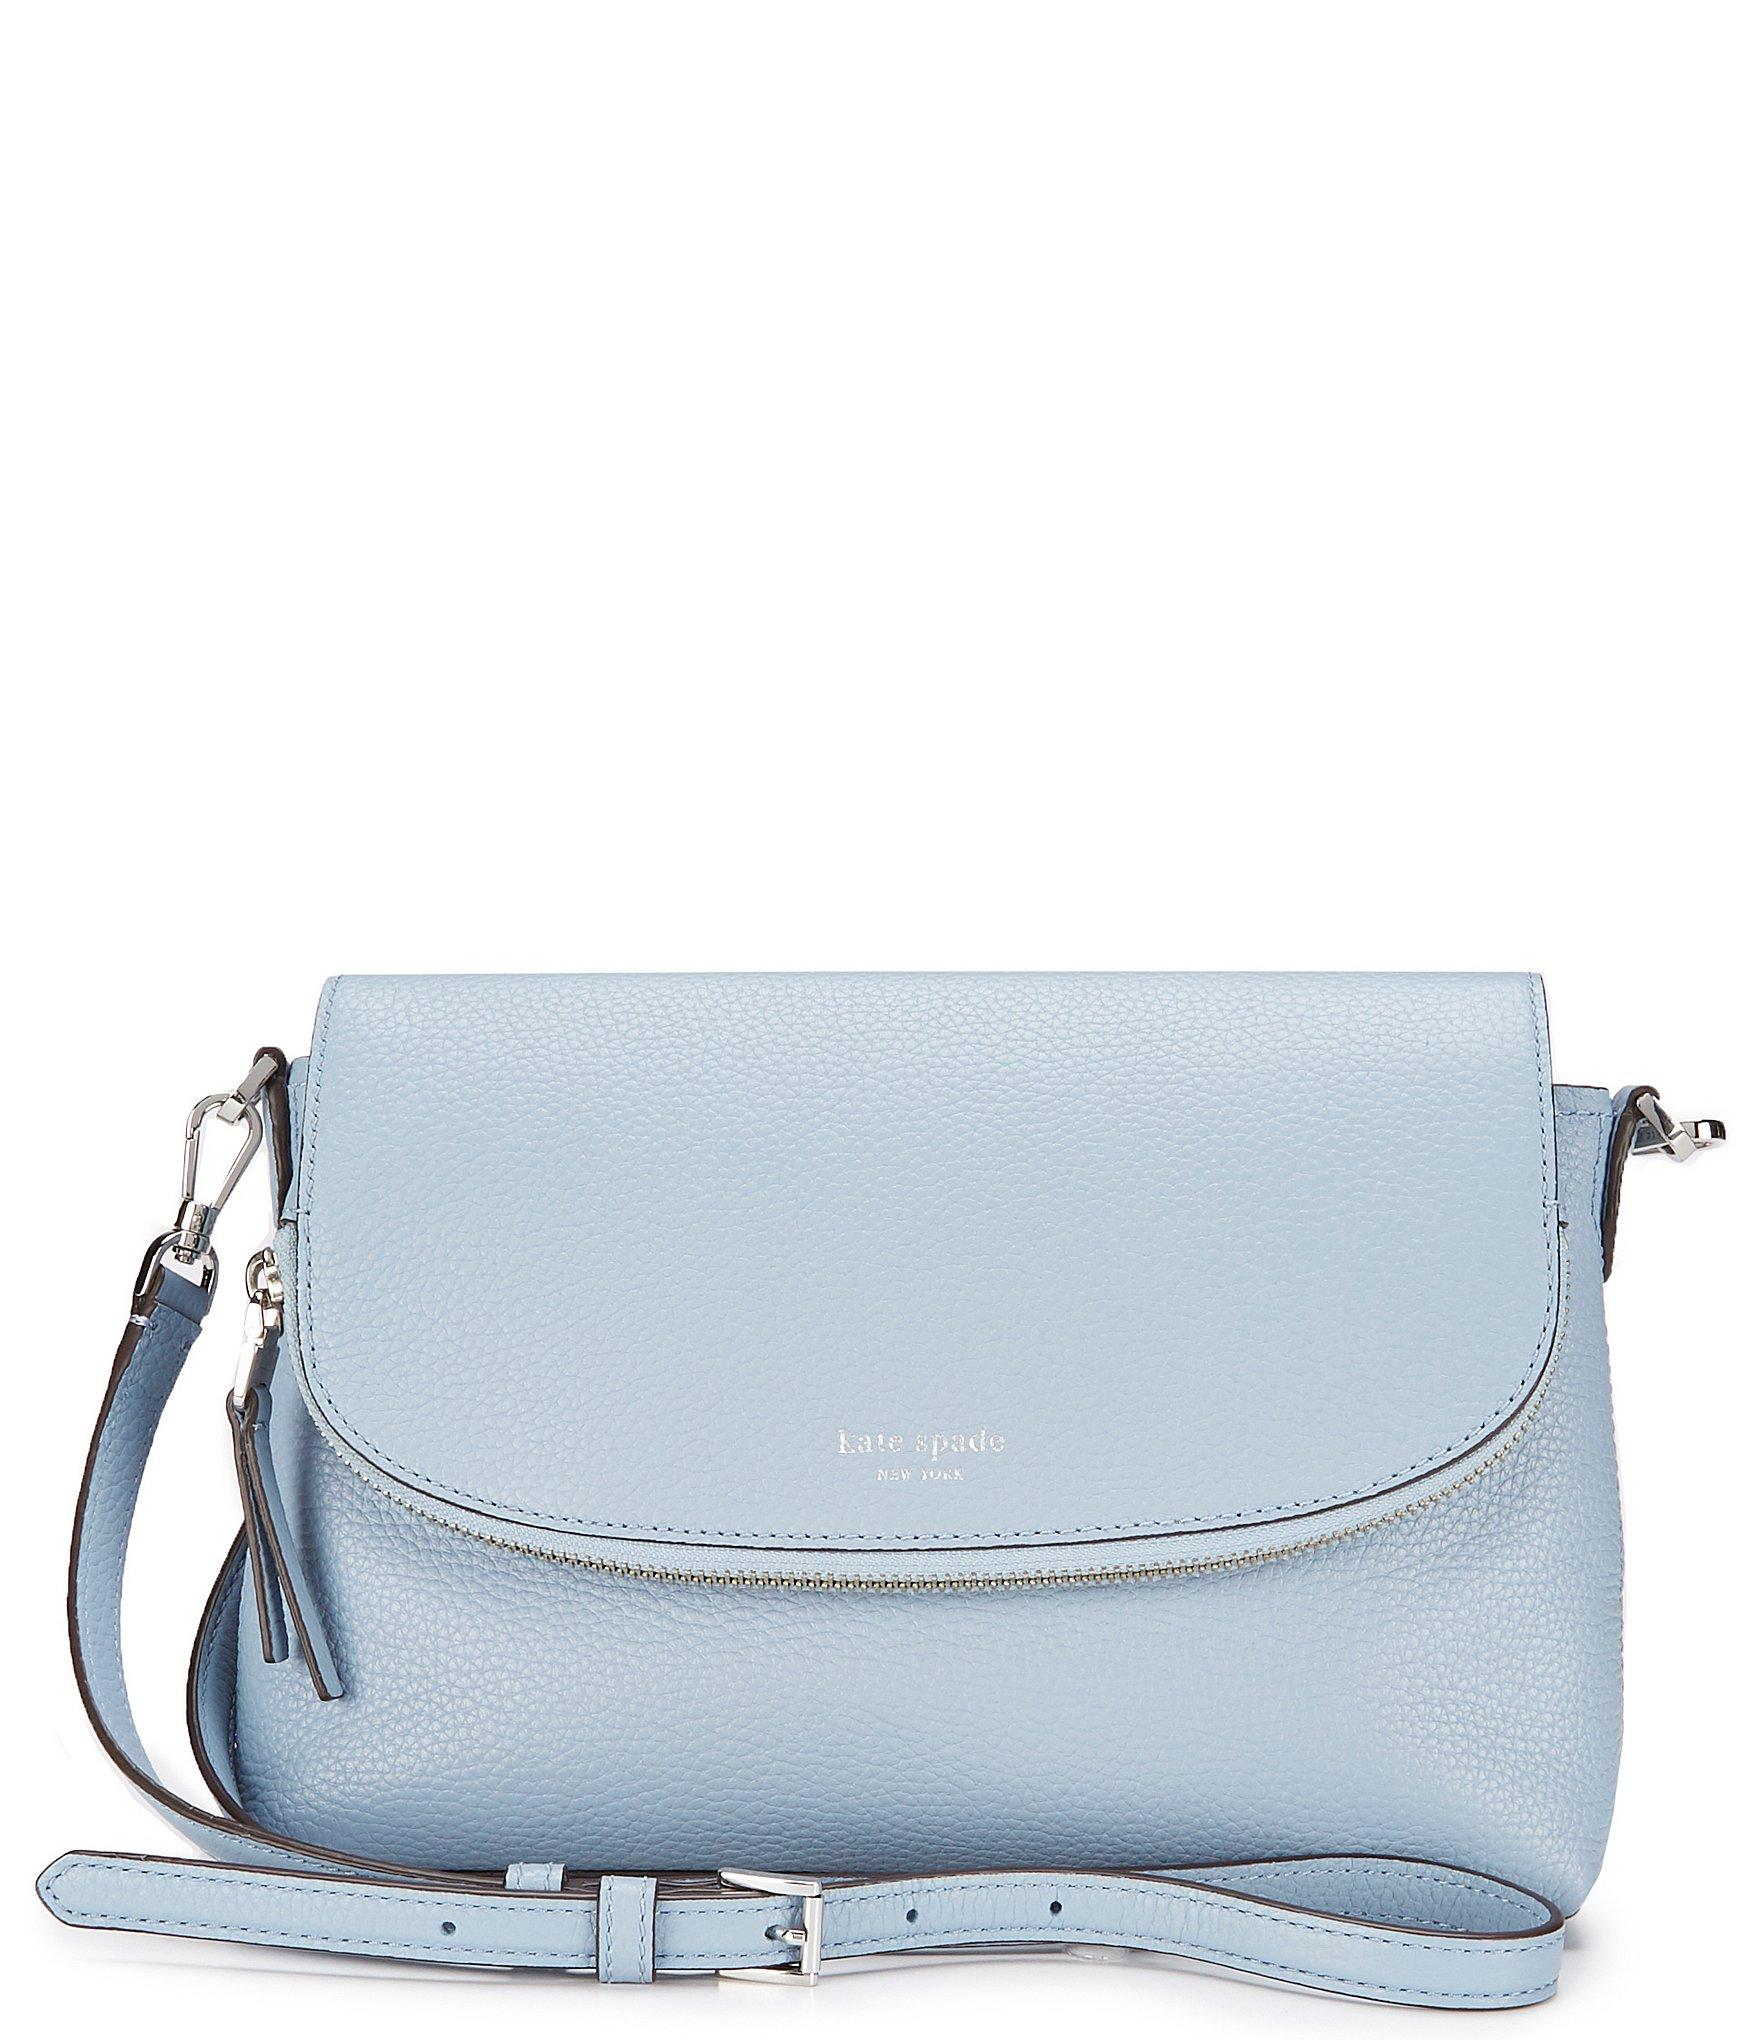 2131a1cc0a7f Lyst - Kate Spade Polly Large Flap Cross-body Bag in Blue